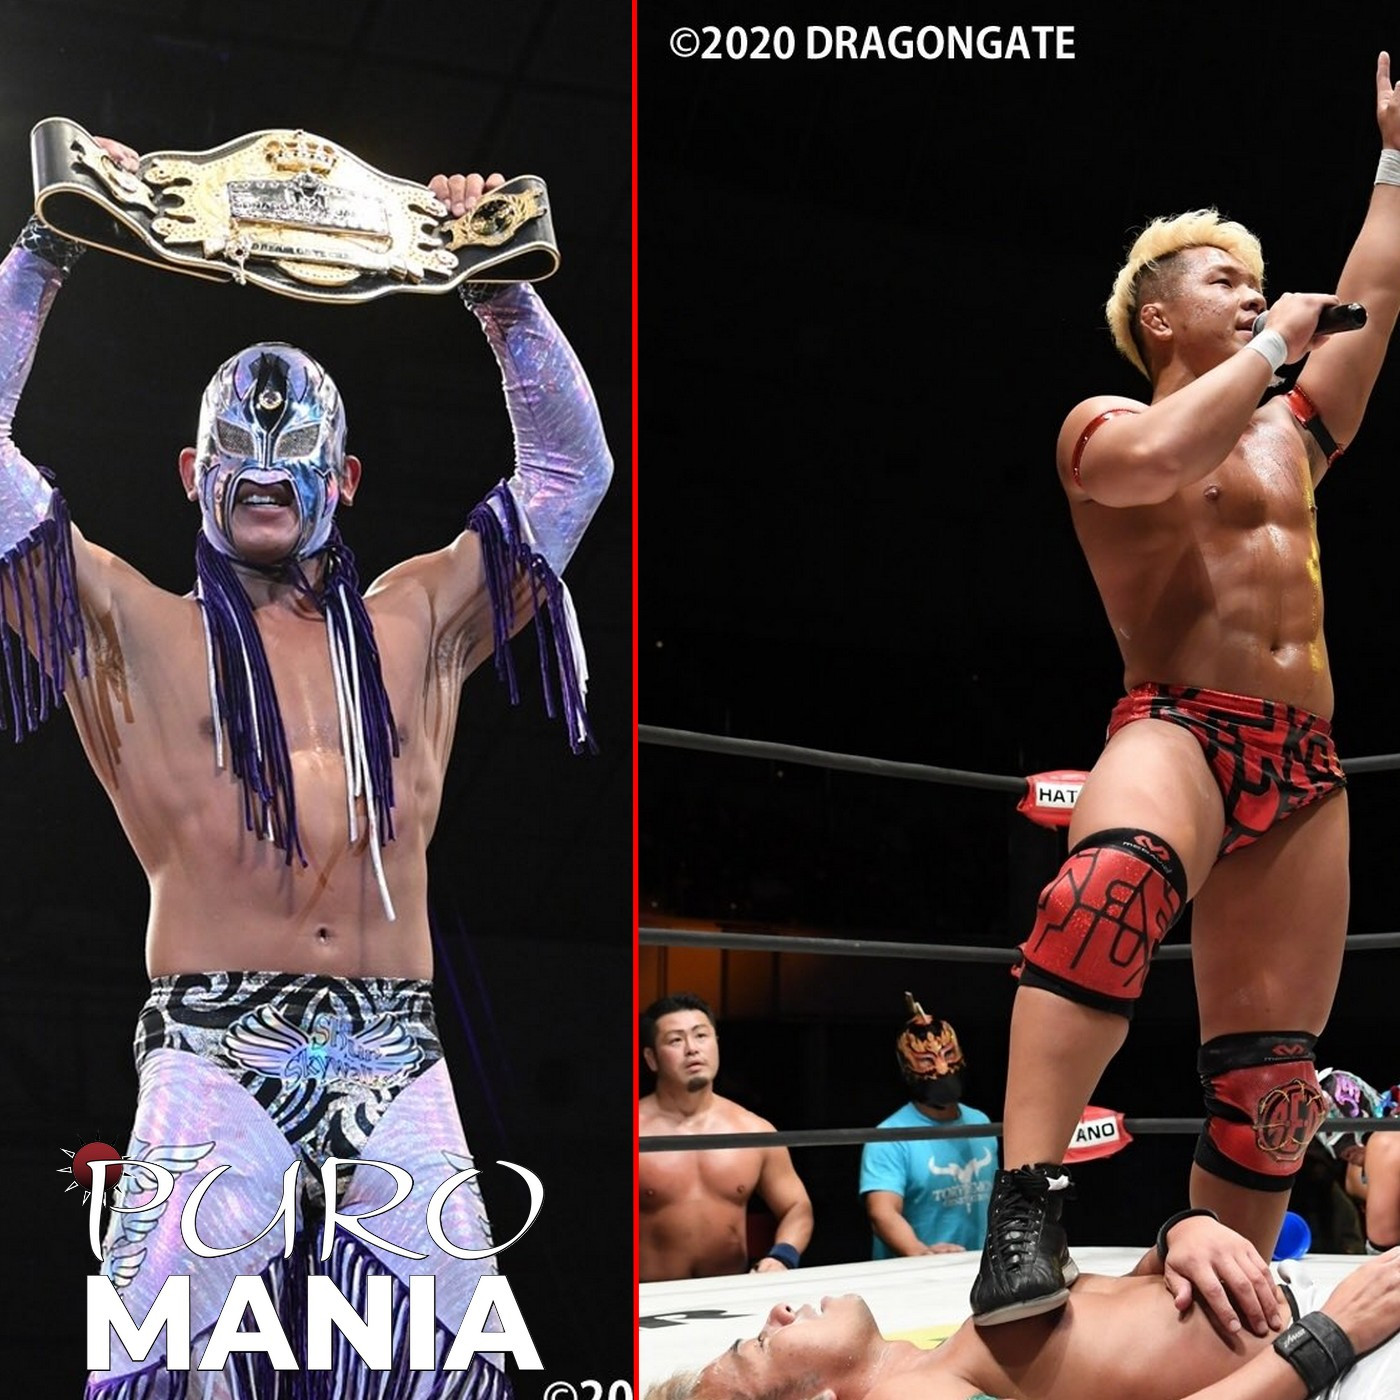 PuroMania #EXTRA : Review DragonGate : Final Gate 2020